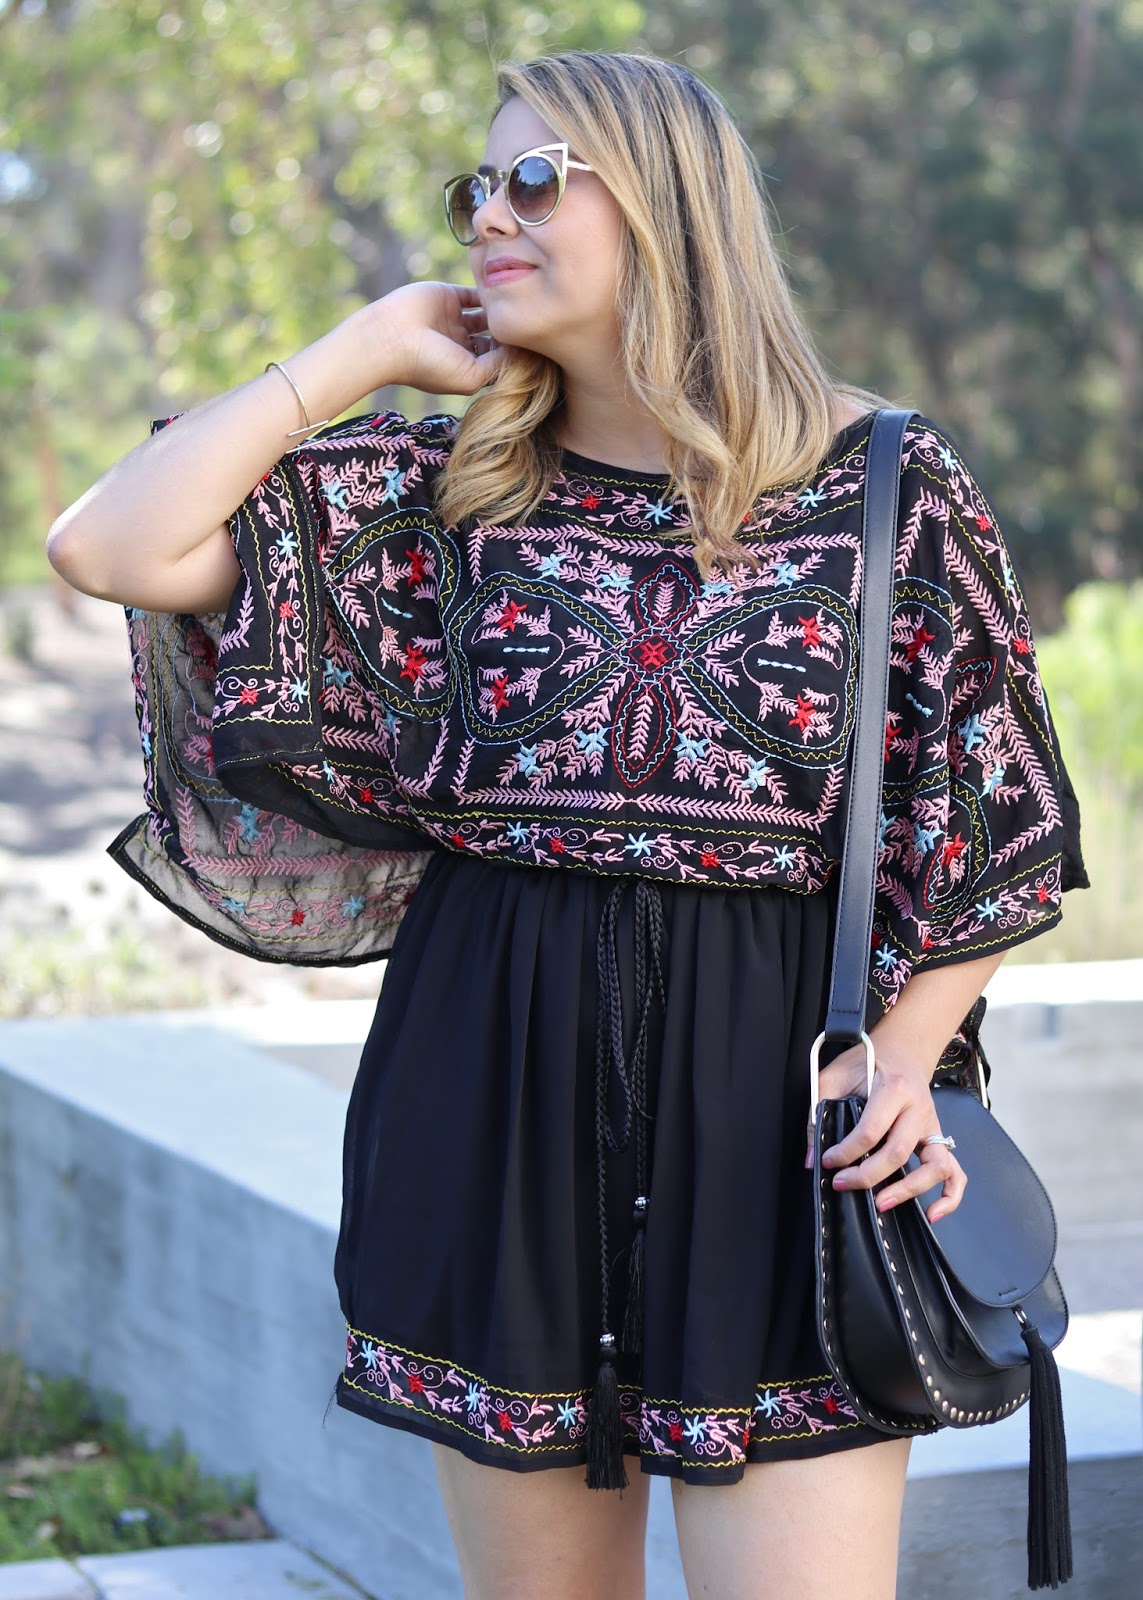 fun colorful dress 2016, chicwish colorful dress, outfit of the day august 2016, socal fashion blogger